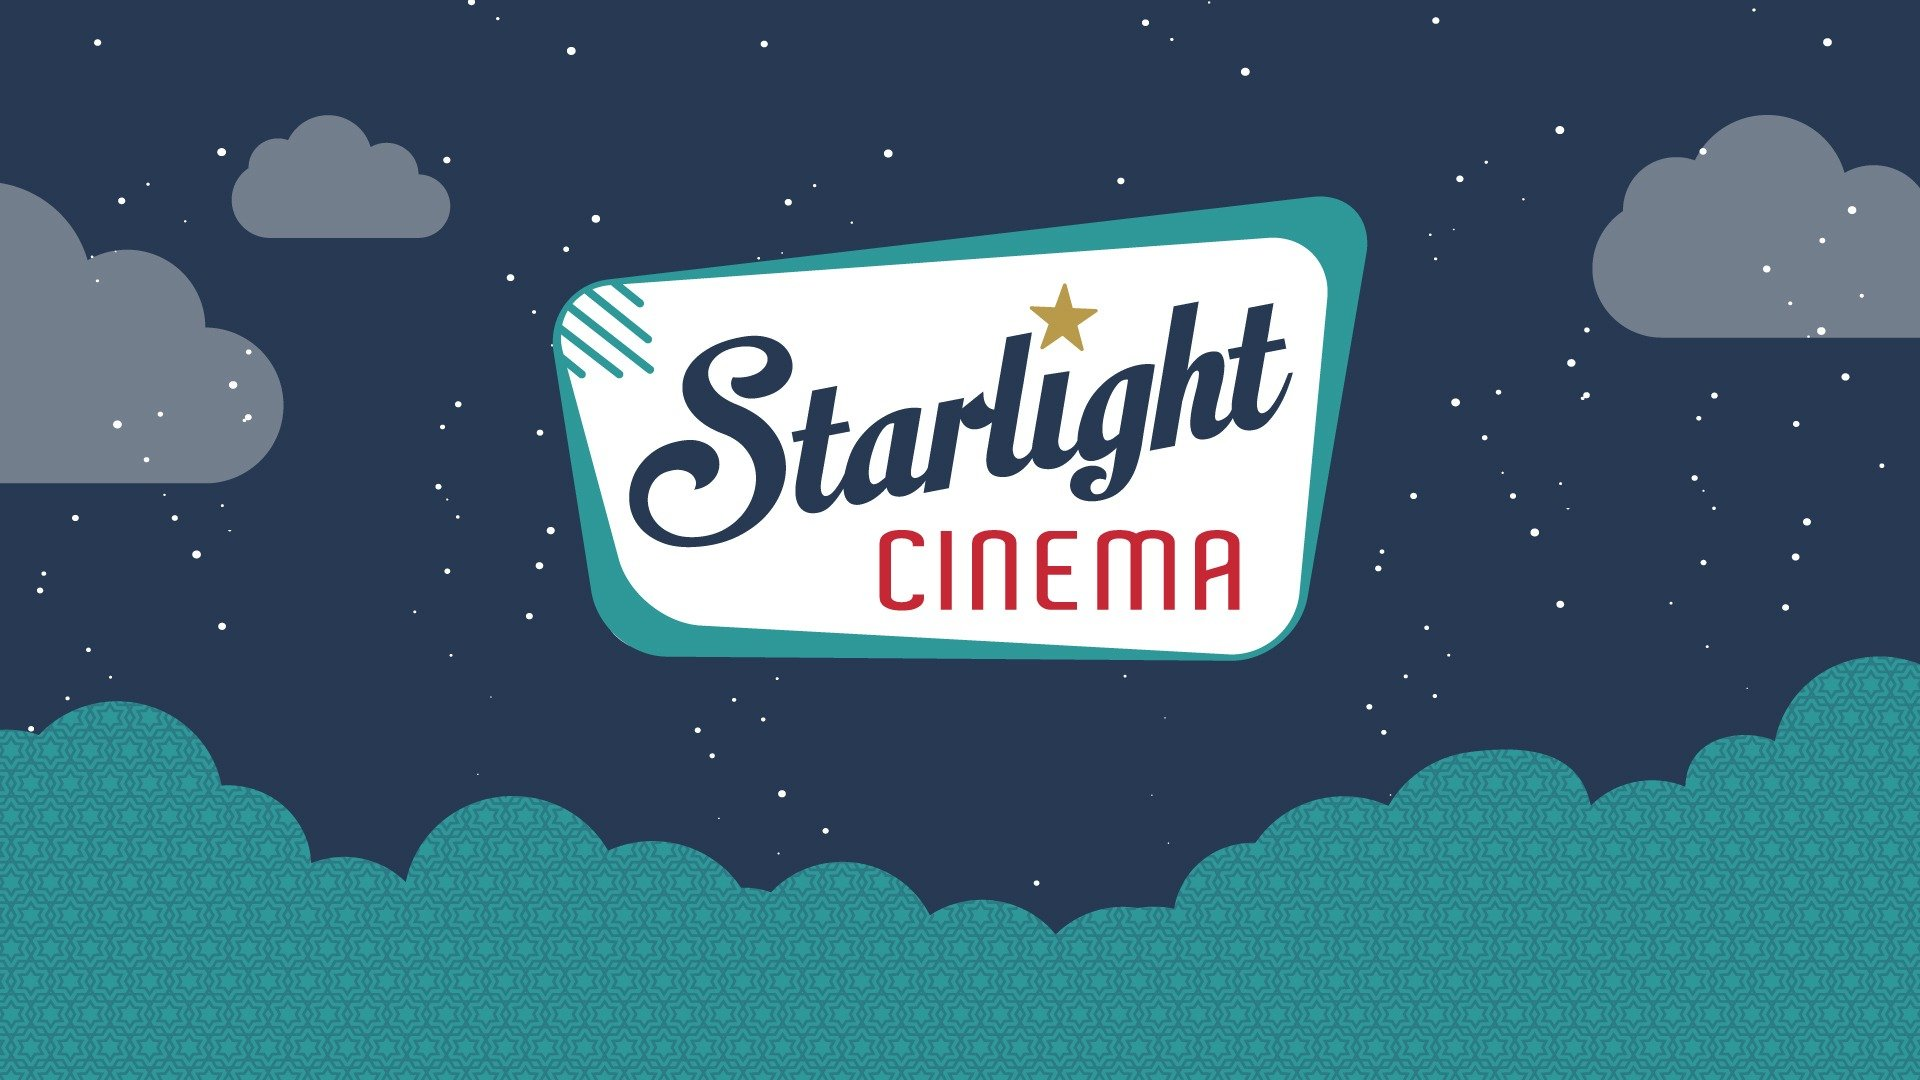 Starlight Cinema logo in sky with clouds